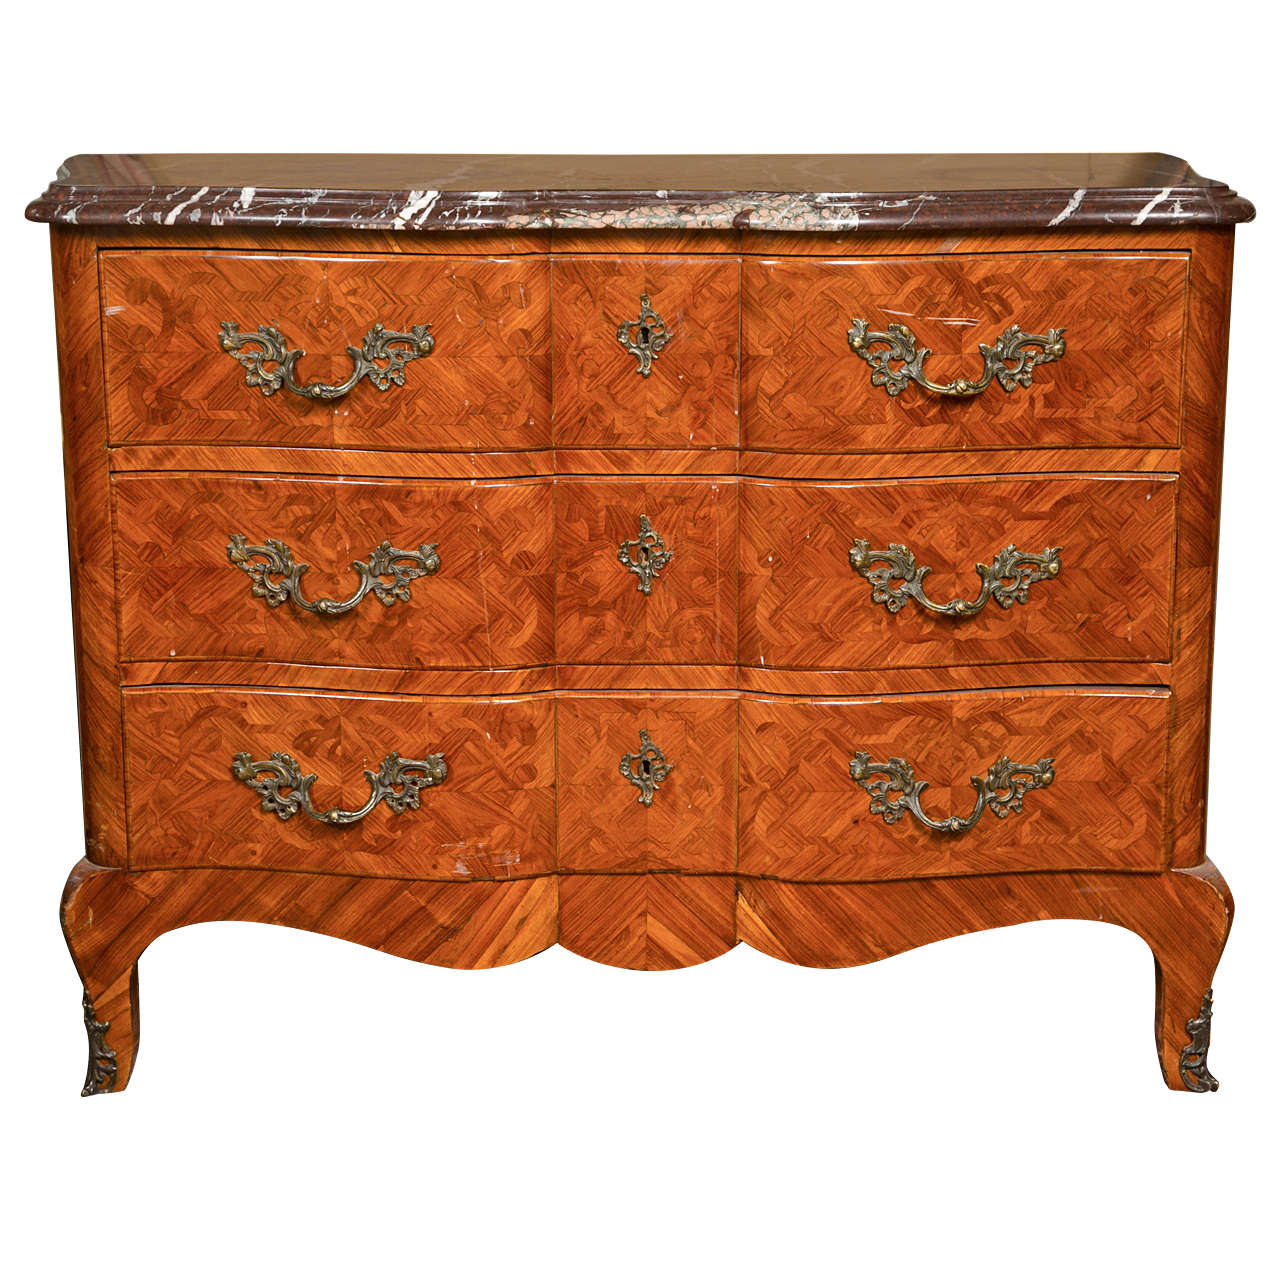 Commodes Louis 15 French Louis Xv Style Tulipwood Commode